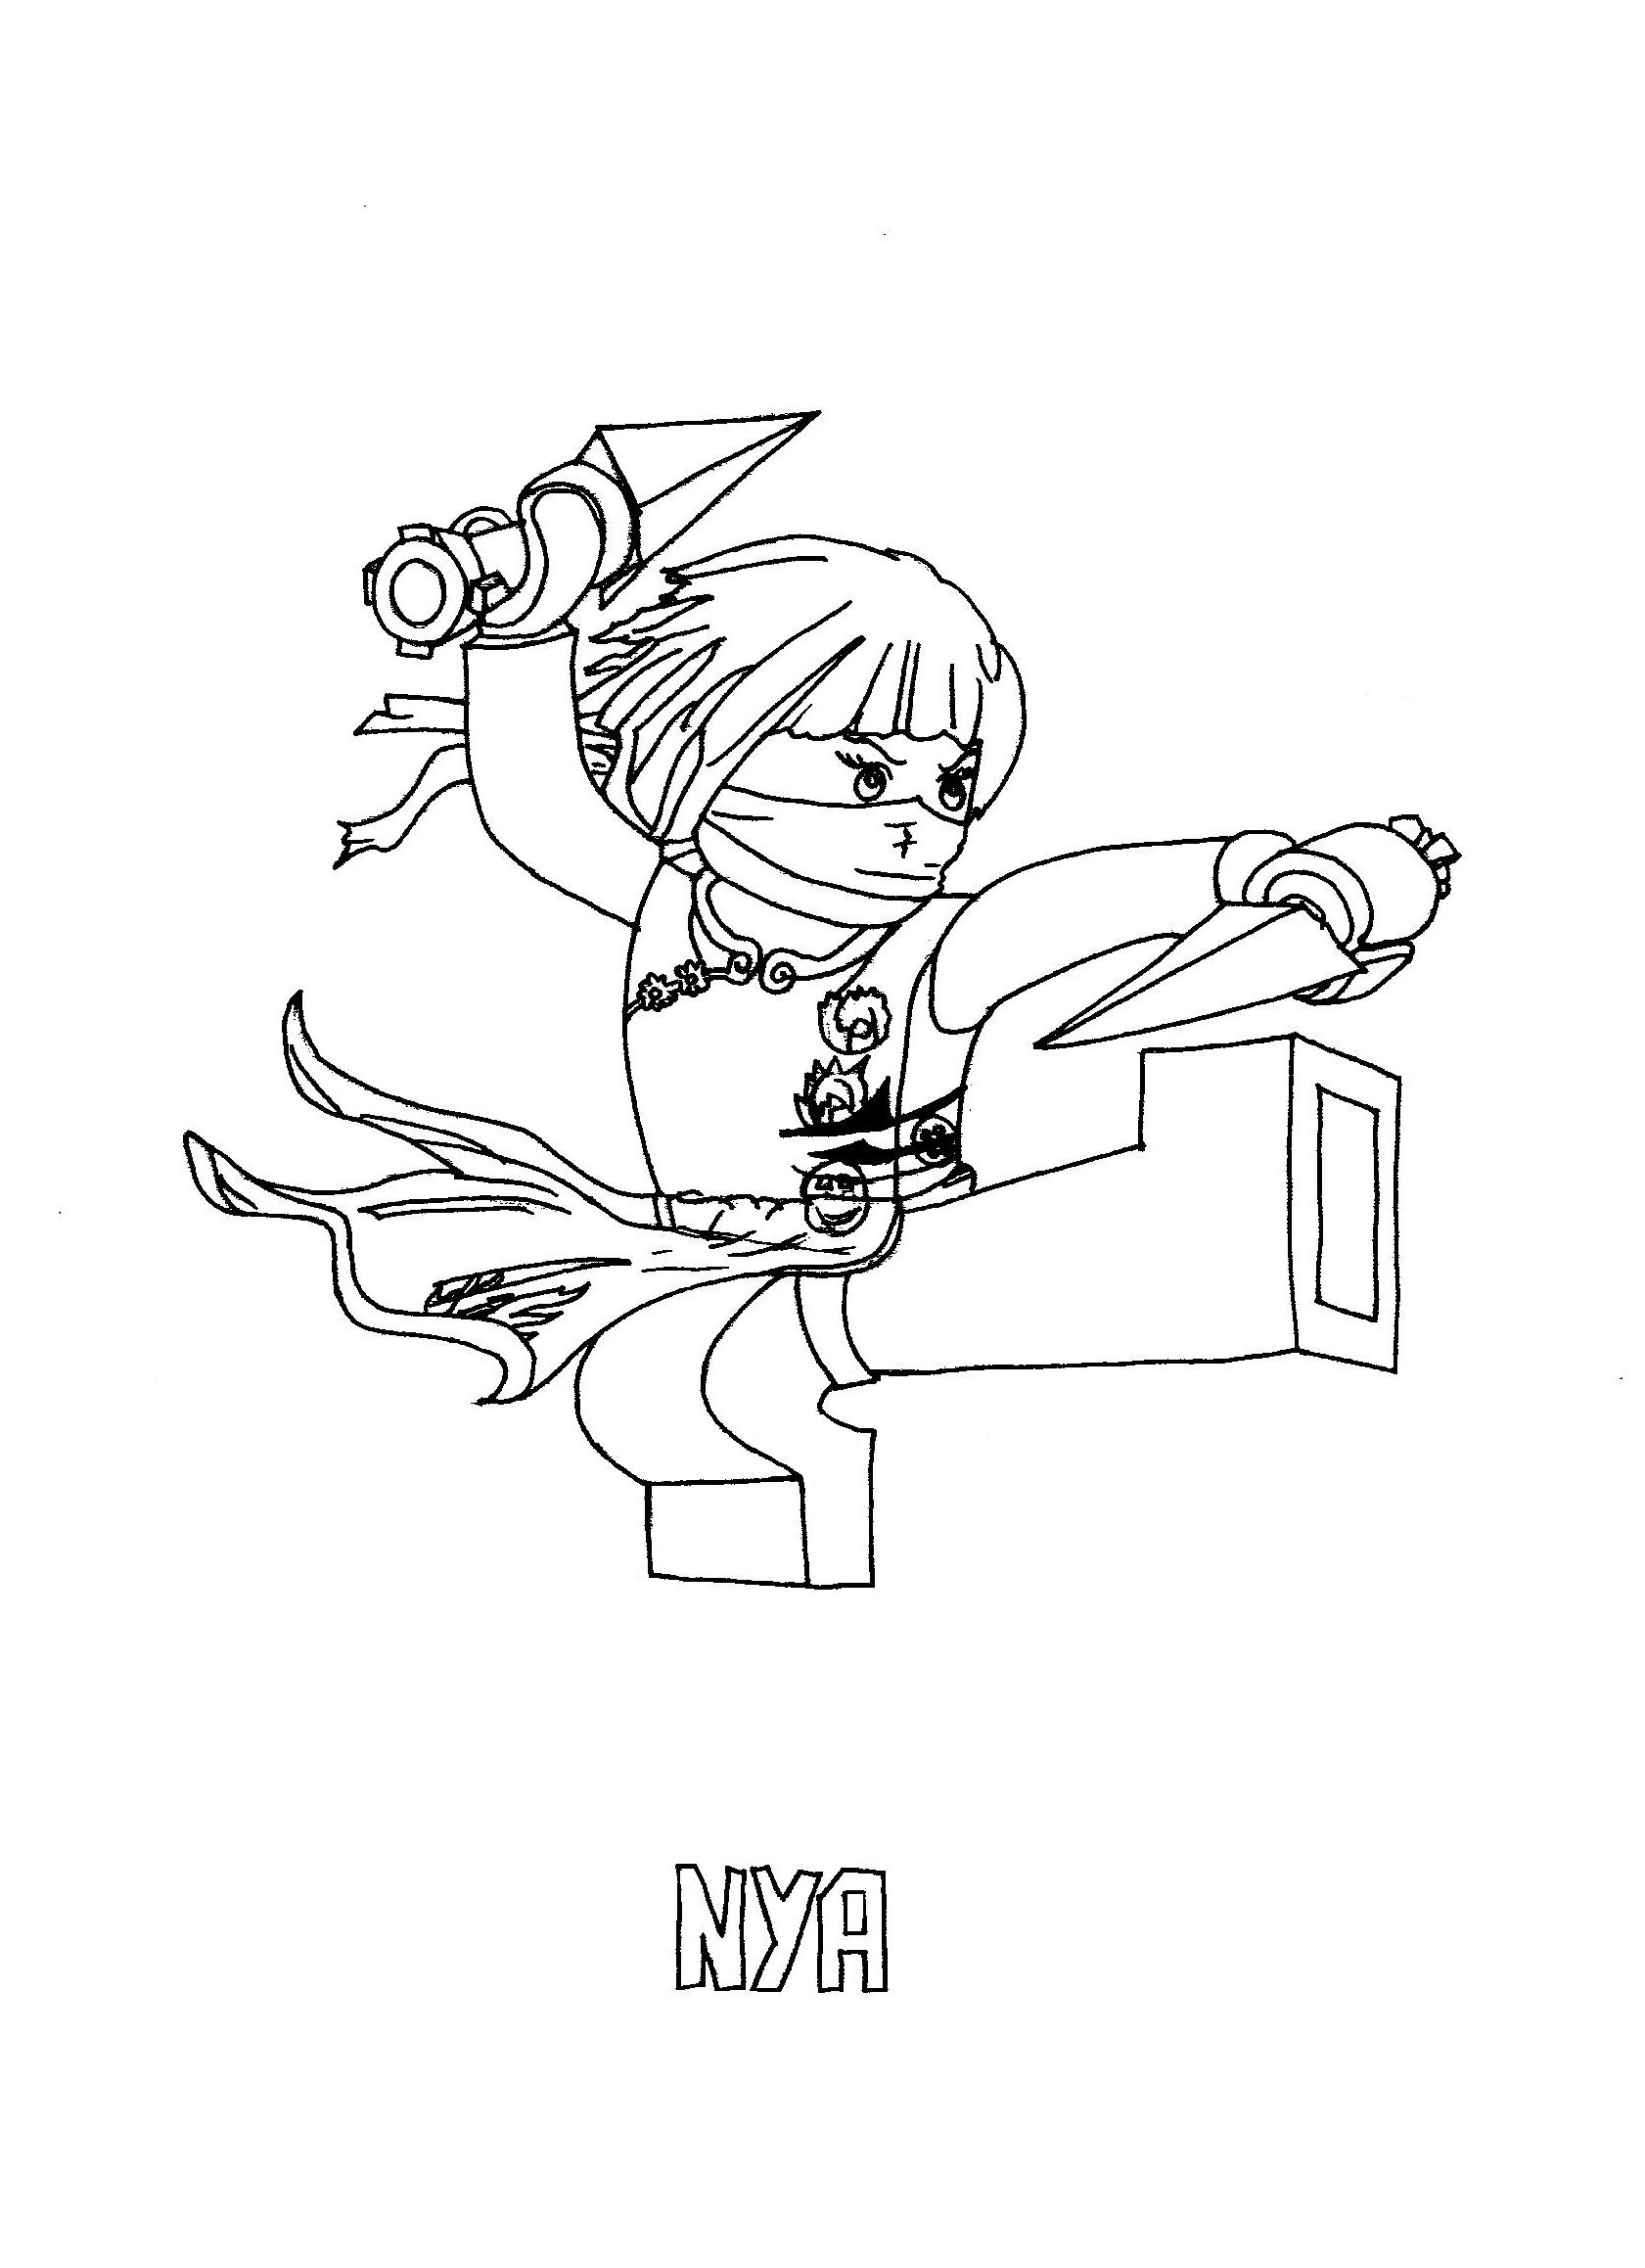 Free Printable Ninjago Coloring Pages For Kids | Nick\'s LEGO Ninjago ...